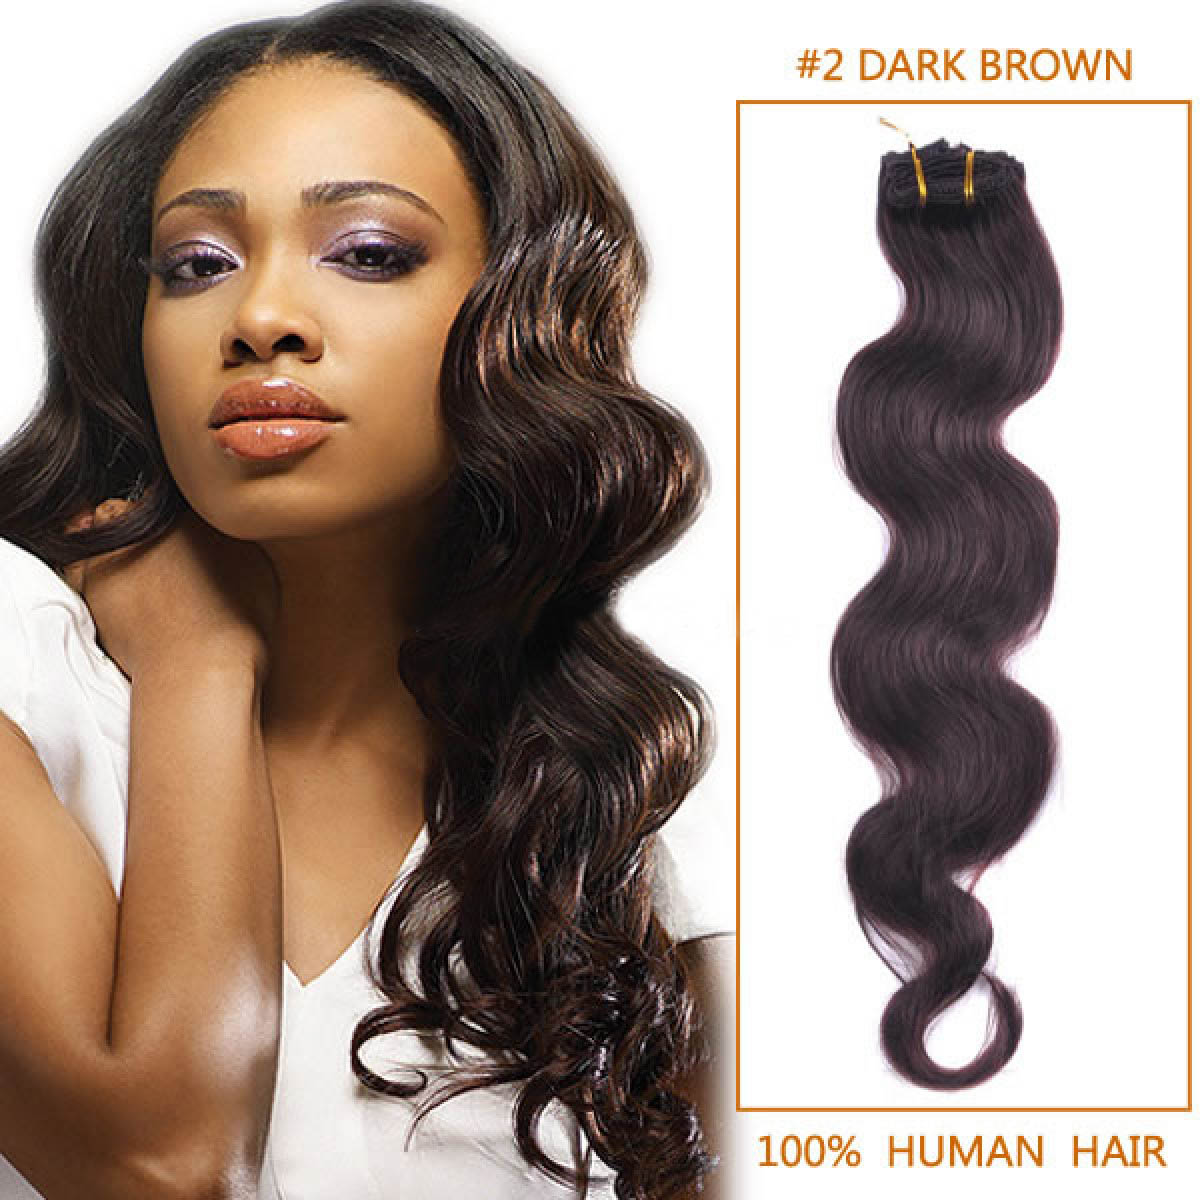 24 Inch 2 Dark Brown Body Wave Brazilian Virgin Hair Wefts